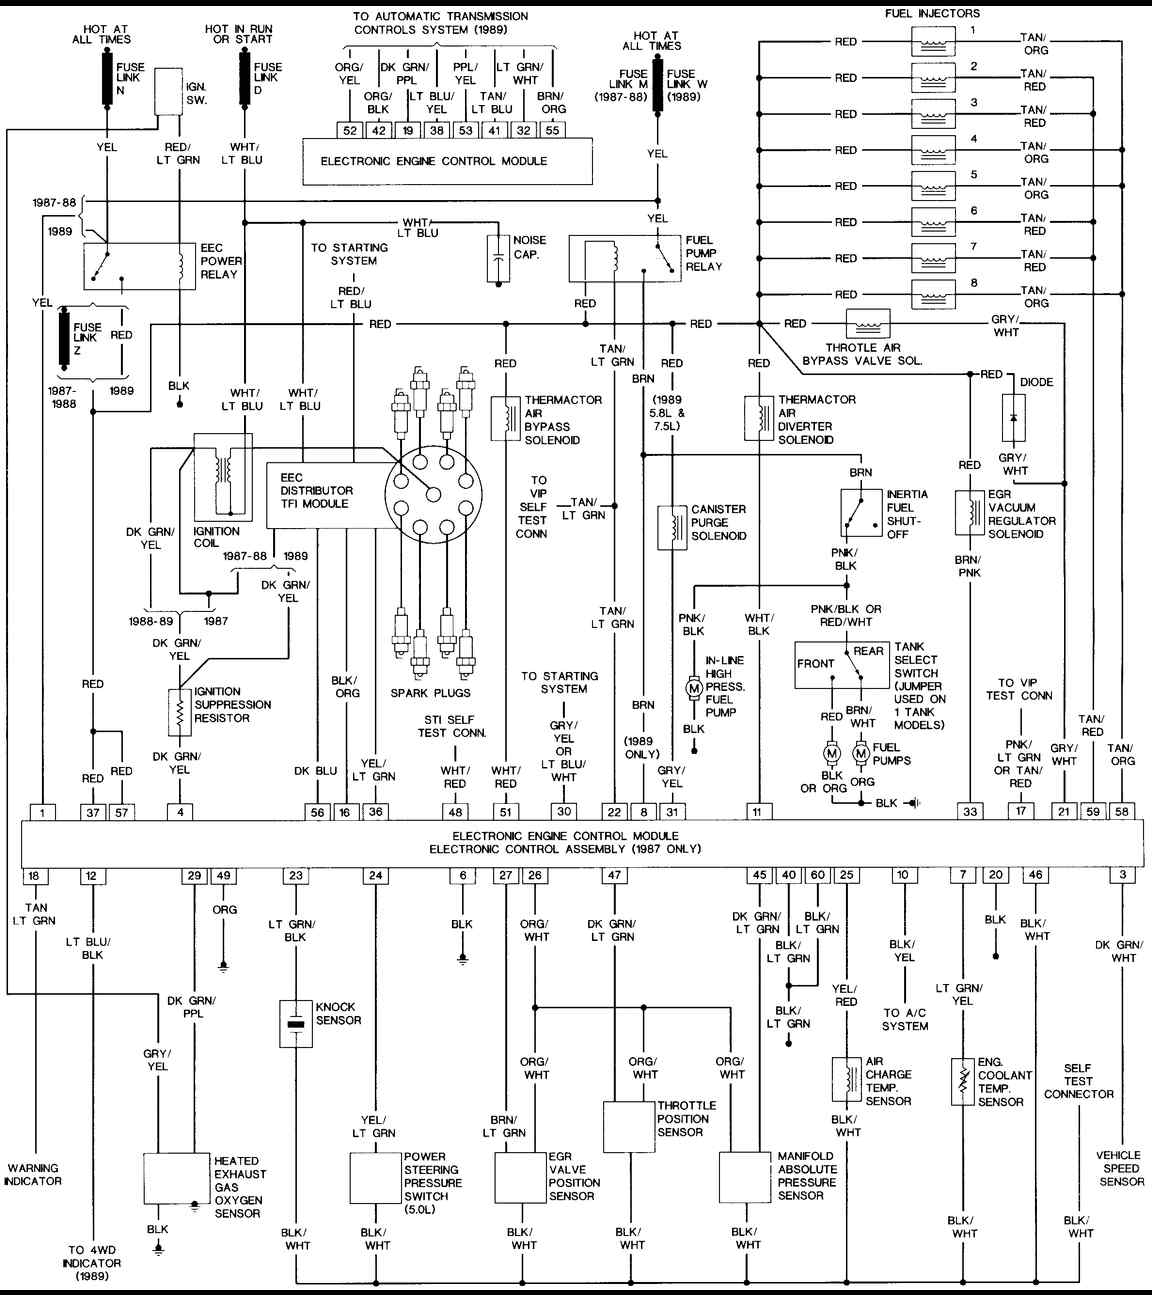 1988 Ford Econoline E350 Fuse Diagram Wire Data Schema 2008 E 450 I Have A 1987 F150 302 Engine The Temperature Gauge 1991